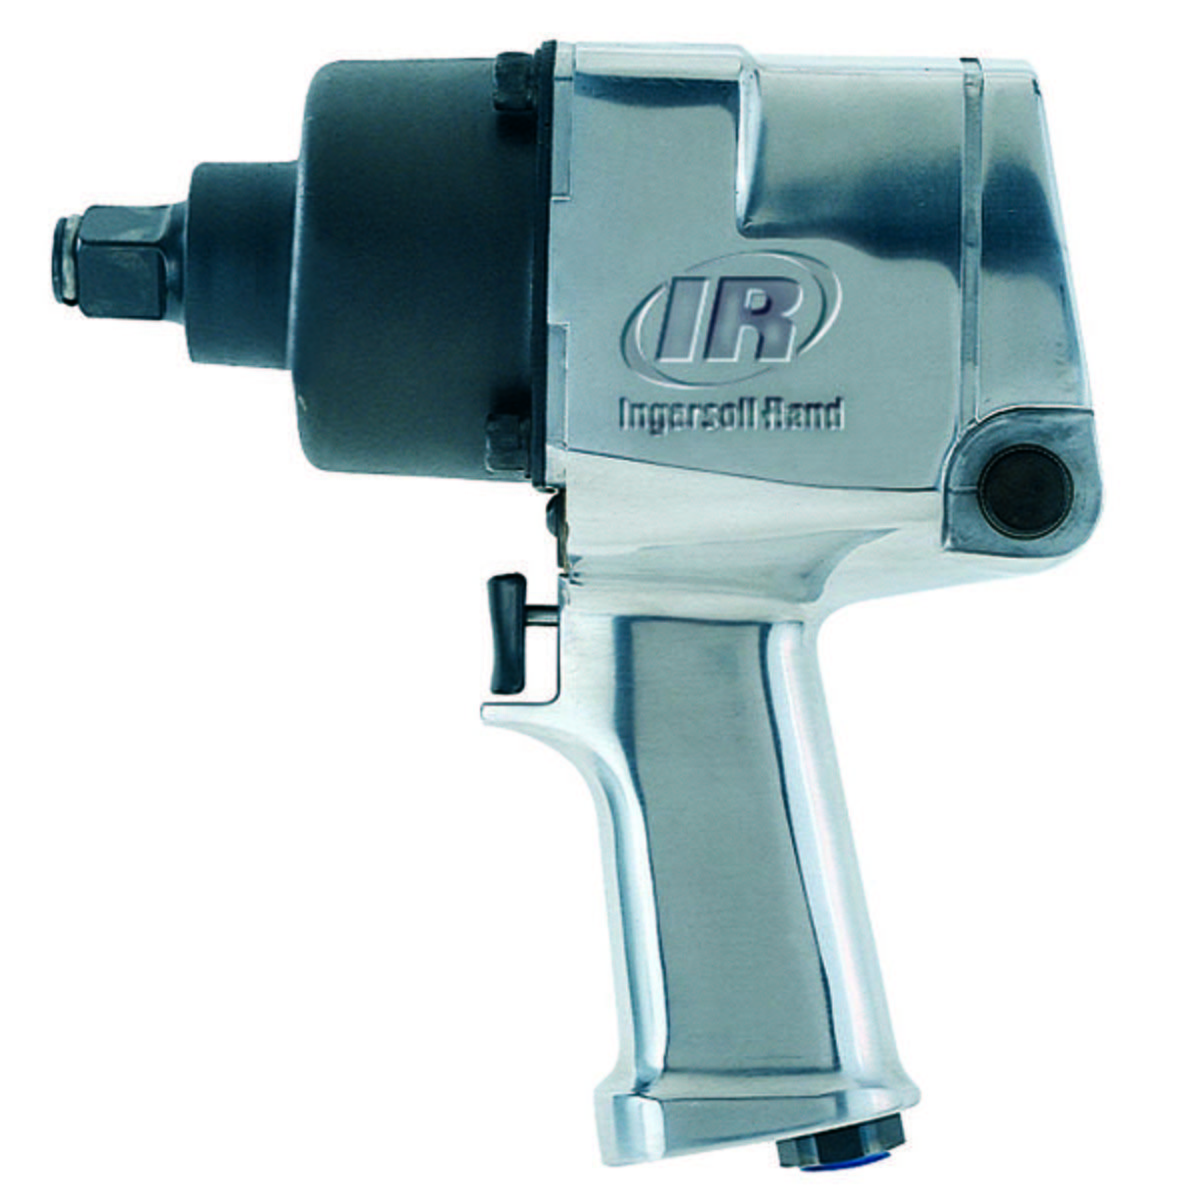 3/4-In Drive Super Duty Air Impact Wrench - 1,100 Ft-Lbs Max Torque